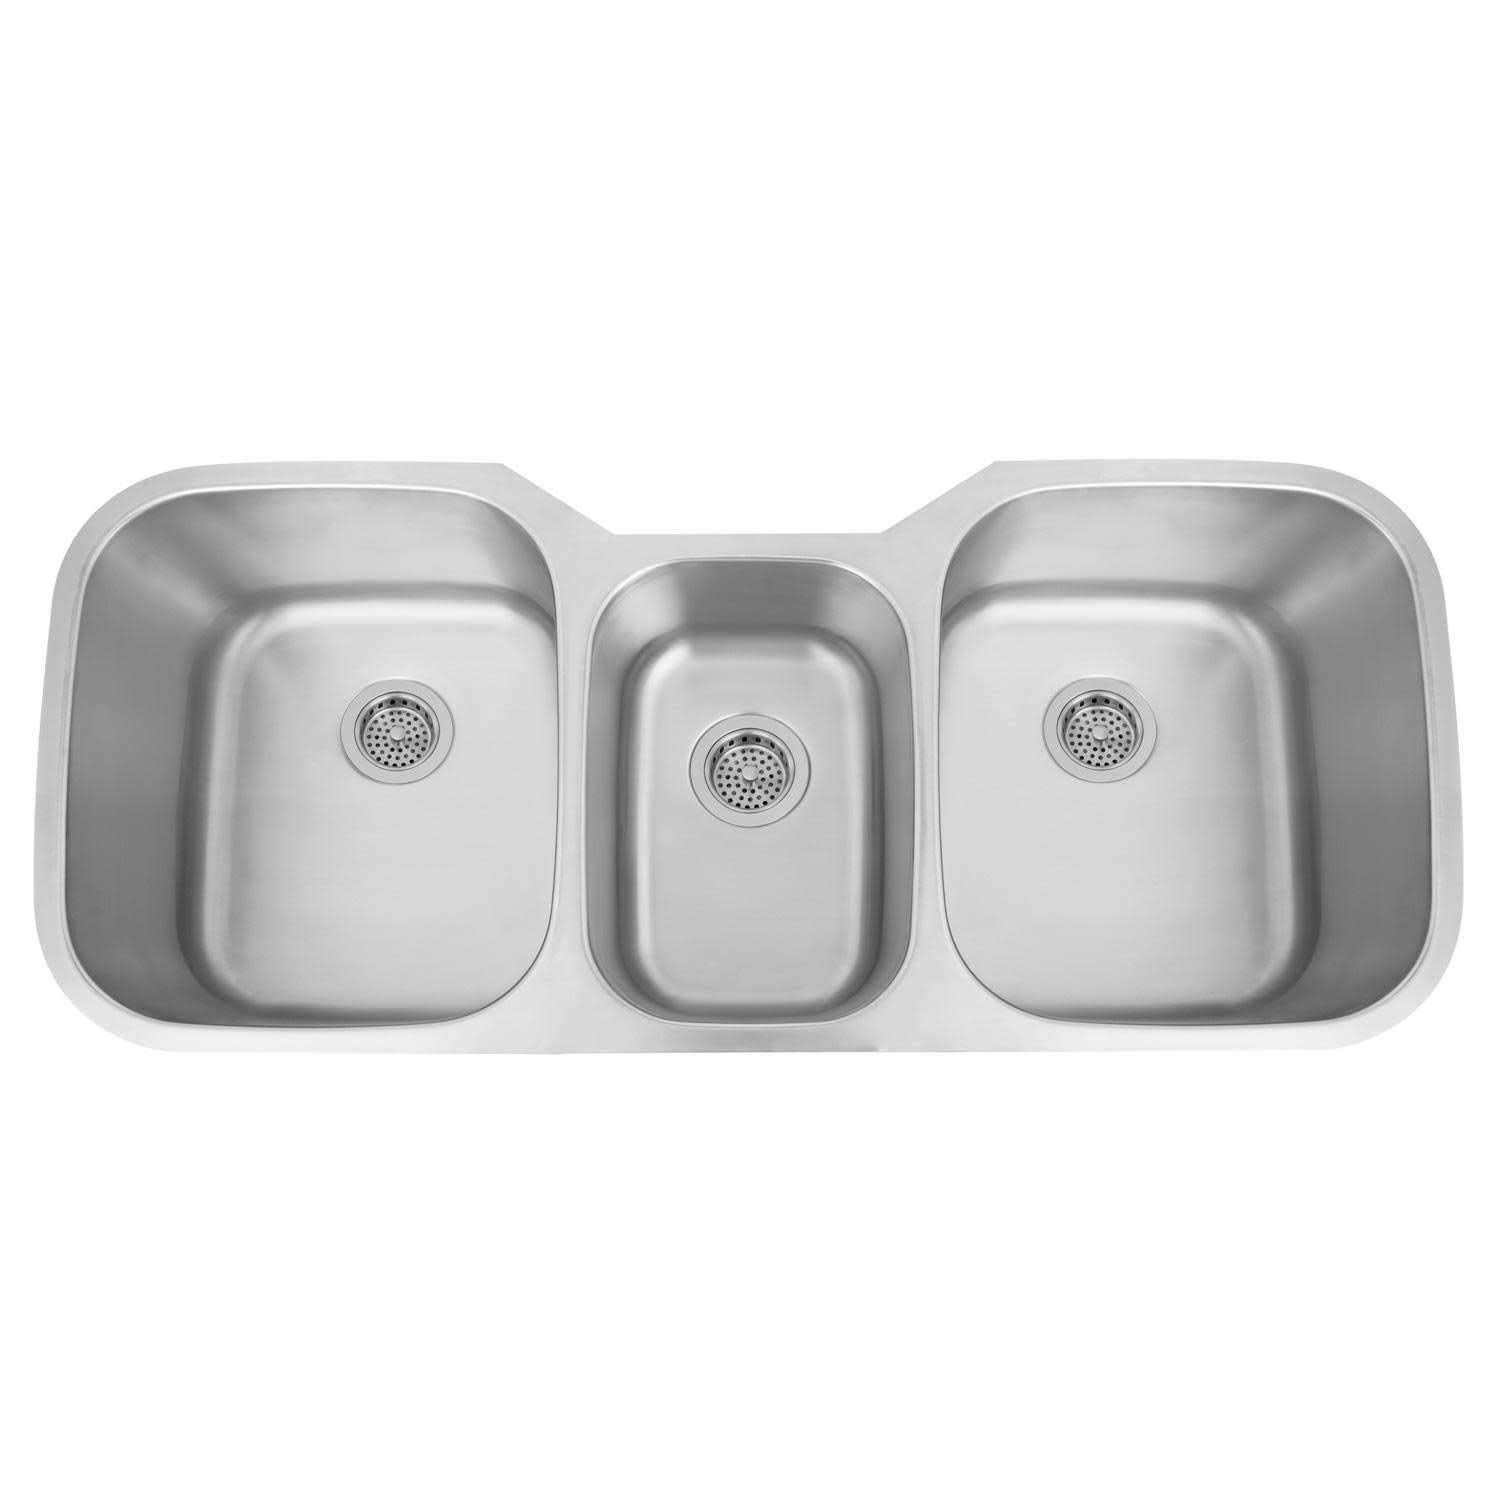 Signature Hardware 261943 Infinite 46'' Offset Triple-Bowl Stainless Steel Undermount Sink by Signature Hardware